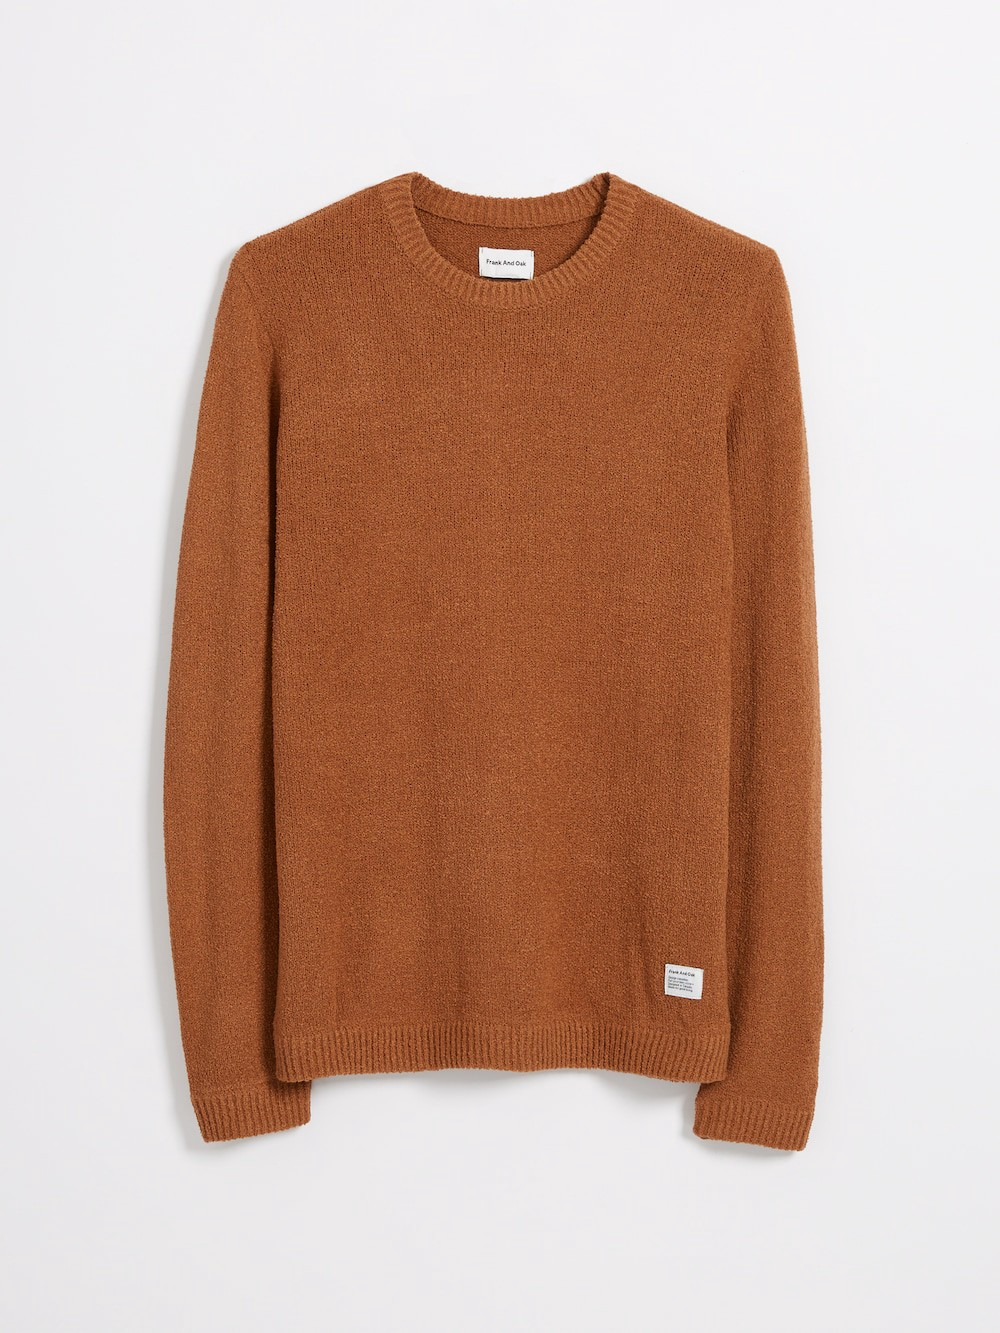 8f31dd8aee51 The Airy Summer Crewneck Sweater in Burnt Orange by Frank And Oak ...